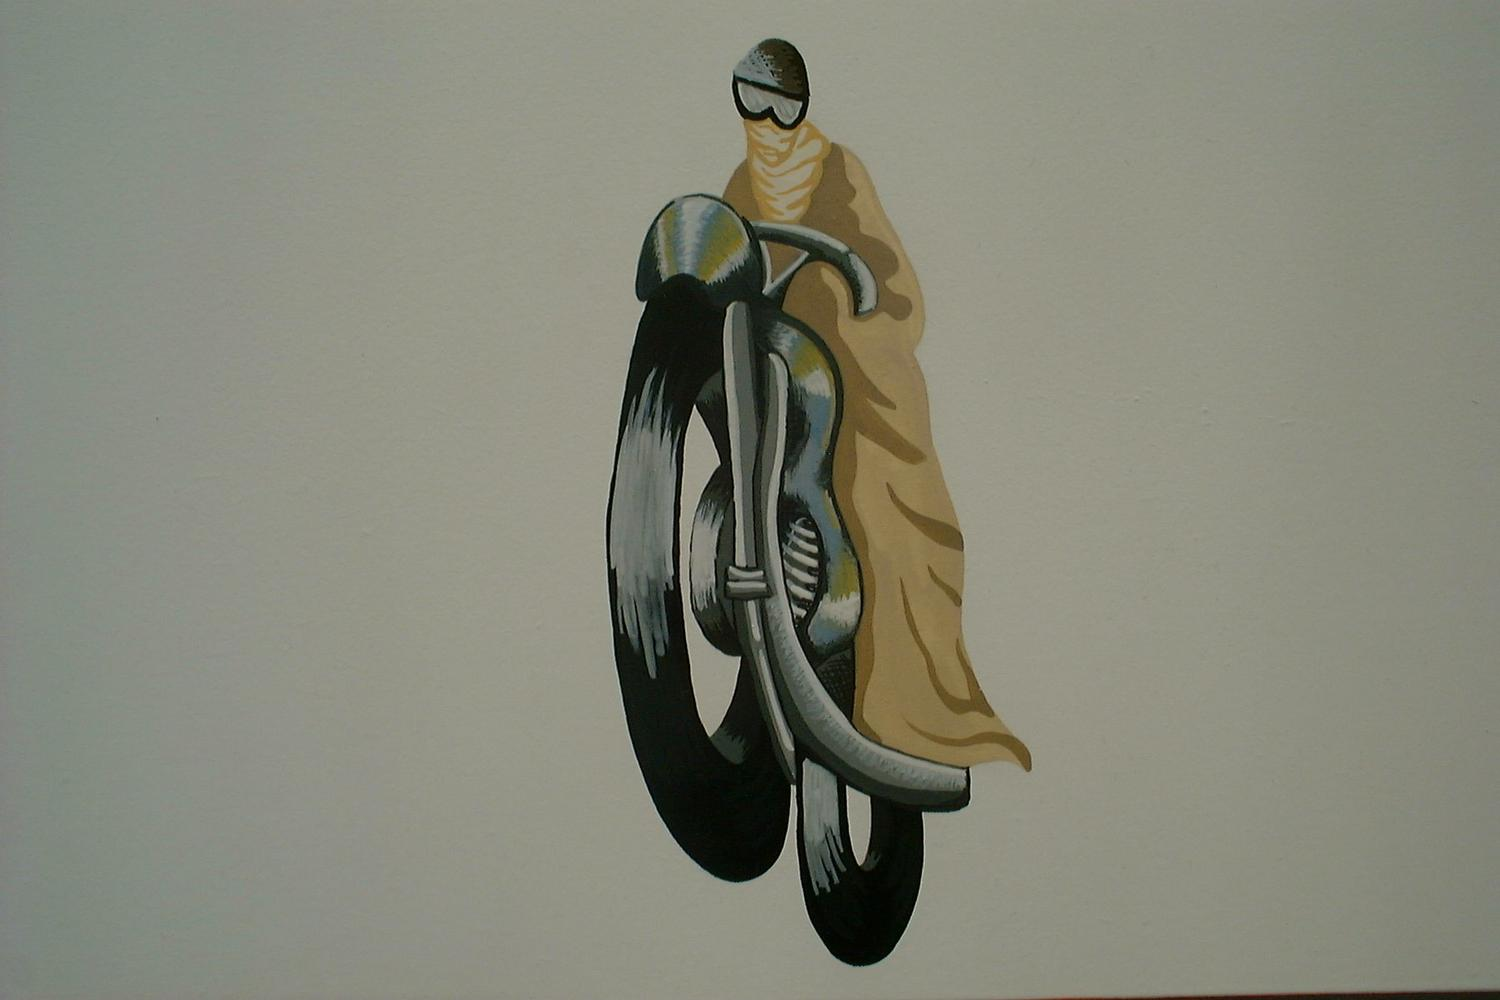 Motorcycle painting for Vintage Transport themed kids room | Dragons of Walton Street